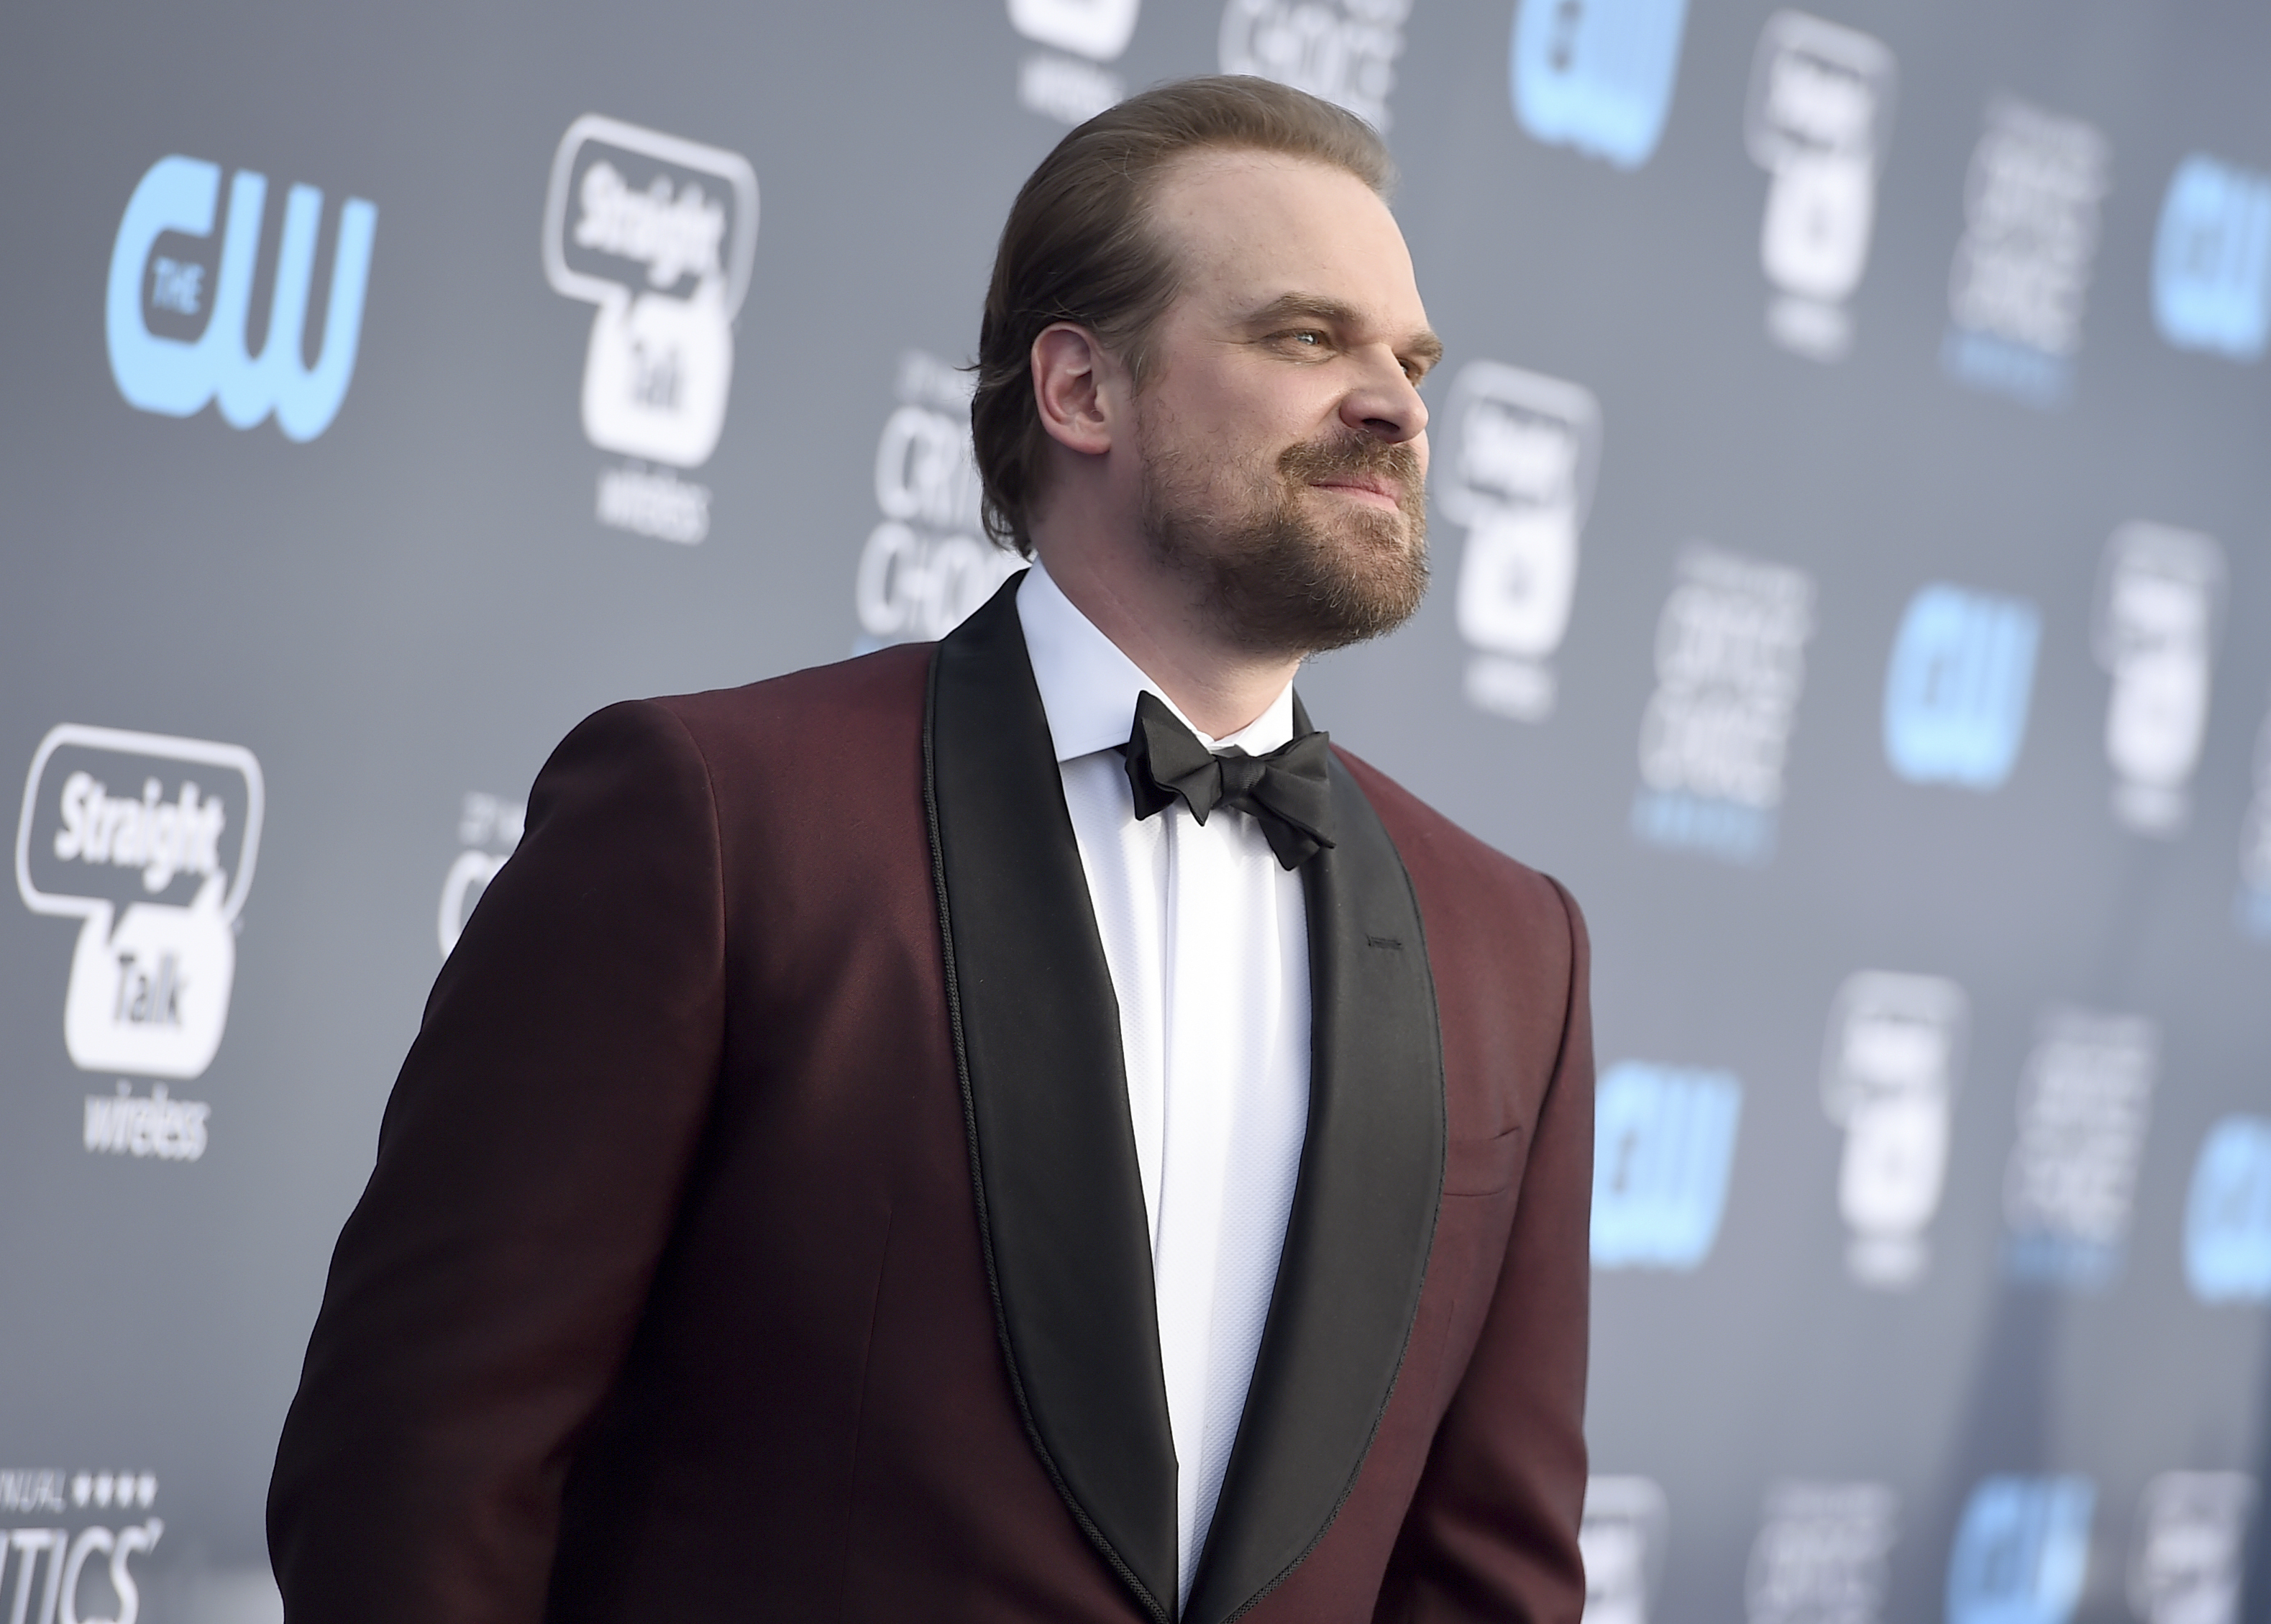 <div class='meta'><div class='origin-logo' data-origin='AP'></div><span class='caption-text' data-credit='Jordan Strauss/Invision/AP'>David Harbour arrives at the 23rd annual Critics' Choice Awards at the Barker Hangar on Thursday, Jan. 11, 2018, in Santa Monica, Calif.</span></div>